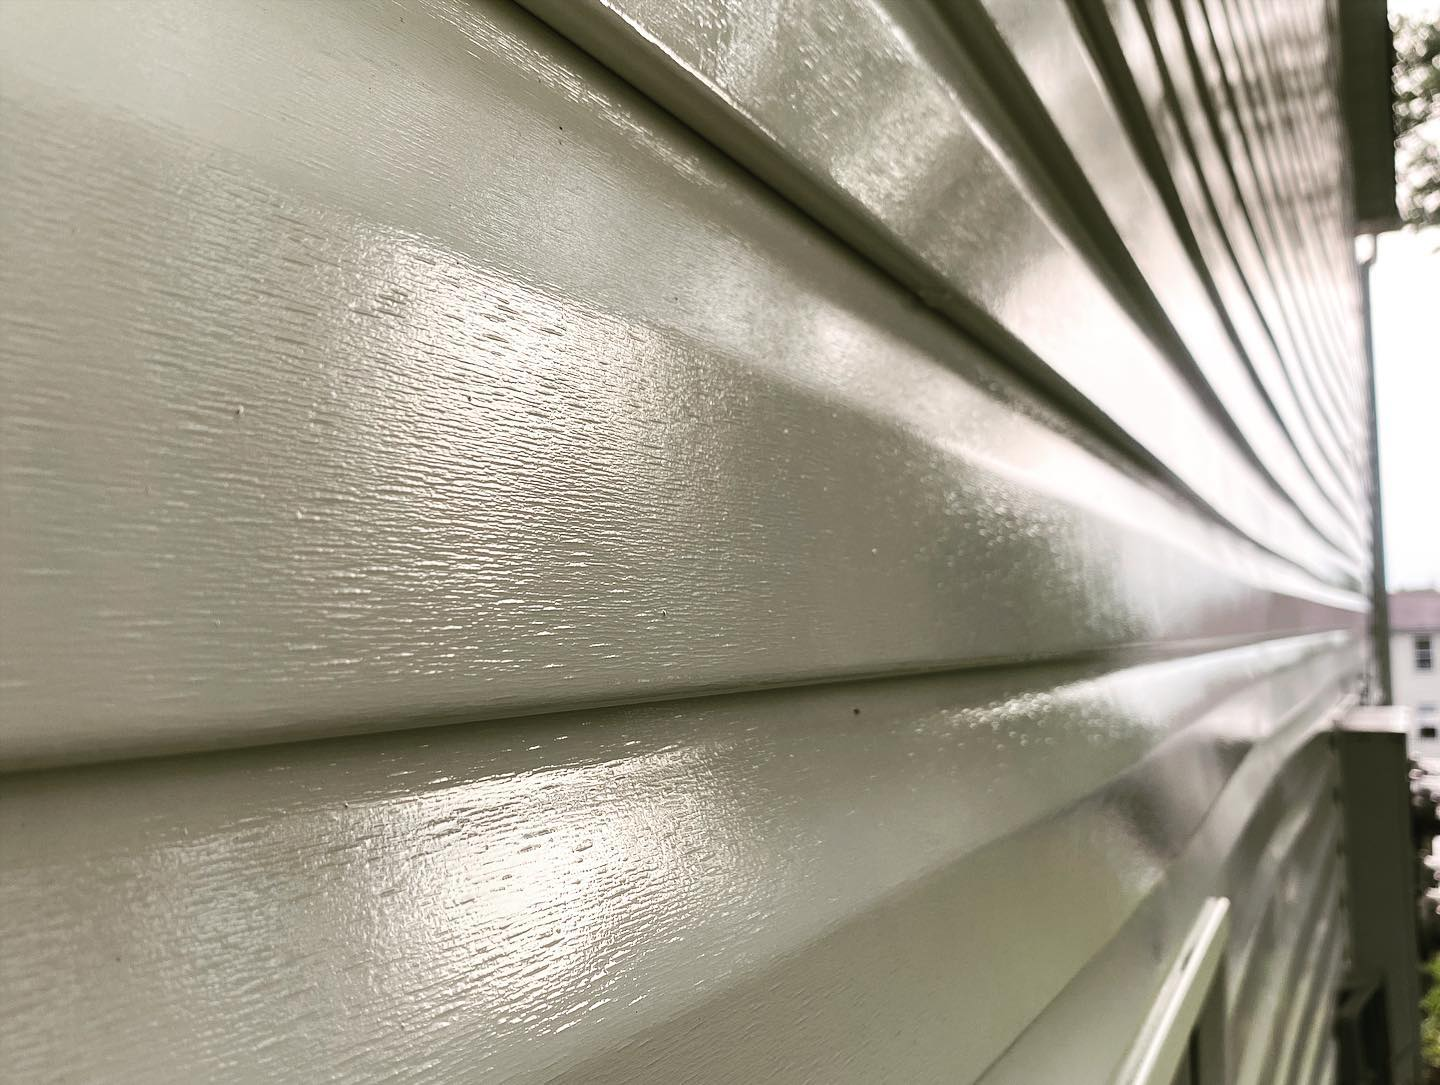 siding cleaning service vinyl siding cleaned pressure washing service residential commercial ofallon mo